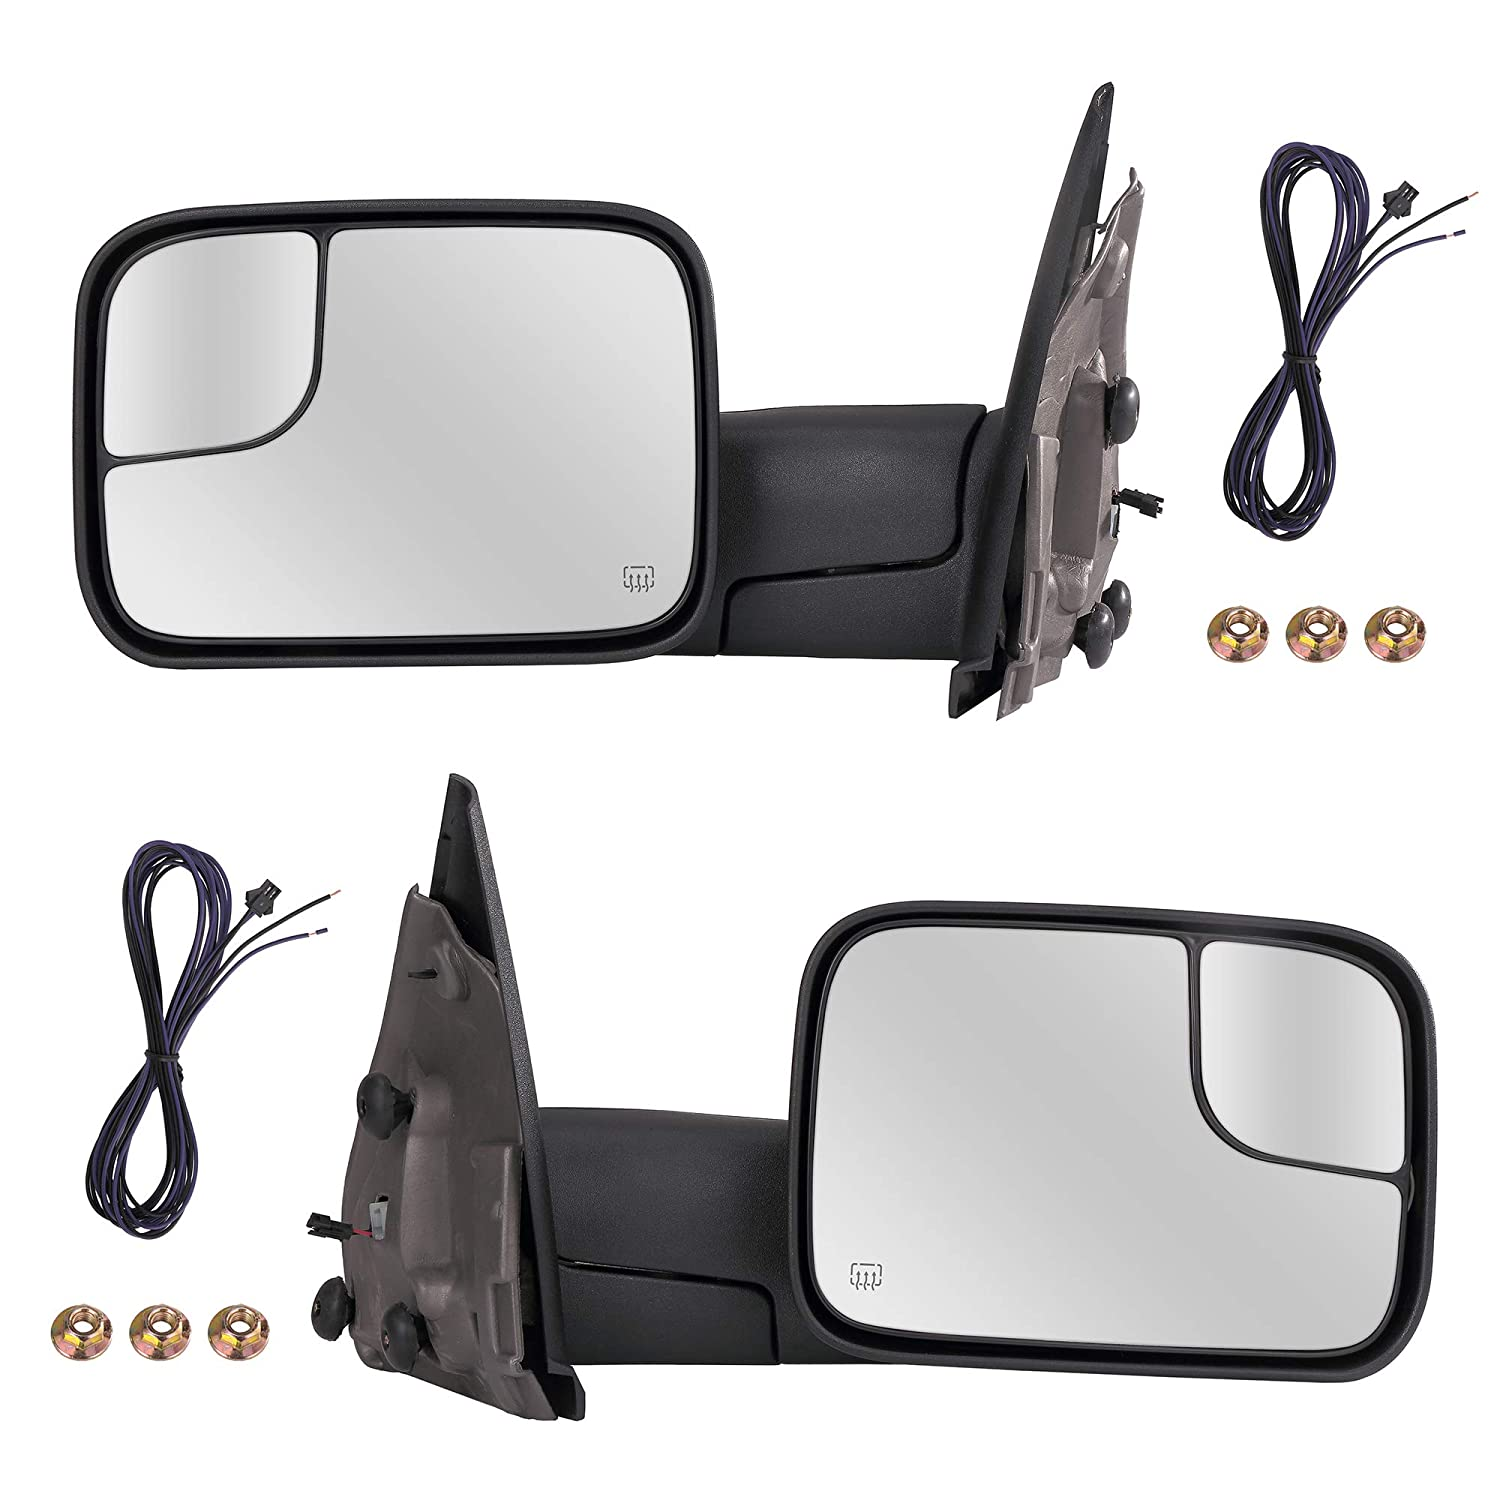 Parts Link # CH1320228 CH1321228 Towing Mirrors Passenger /& Driver Side Power Operated Heated With Amber Signal Black Finish Fits 02-09 Dodge Ram Black Flip-Up Mirror Pair Manual Folding